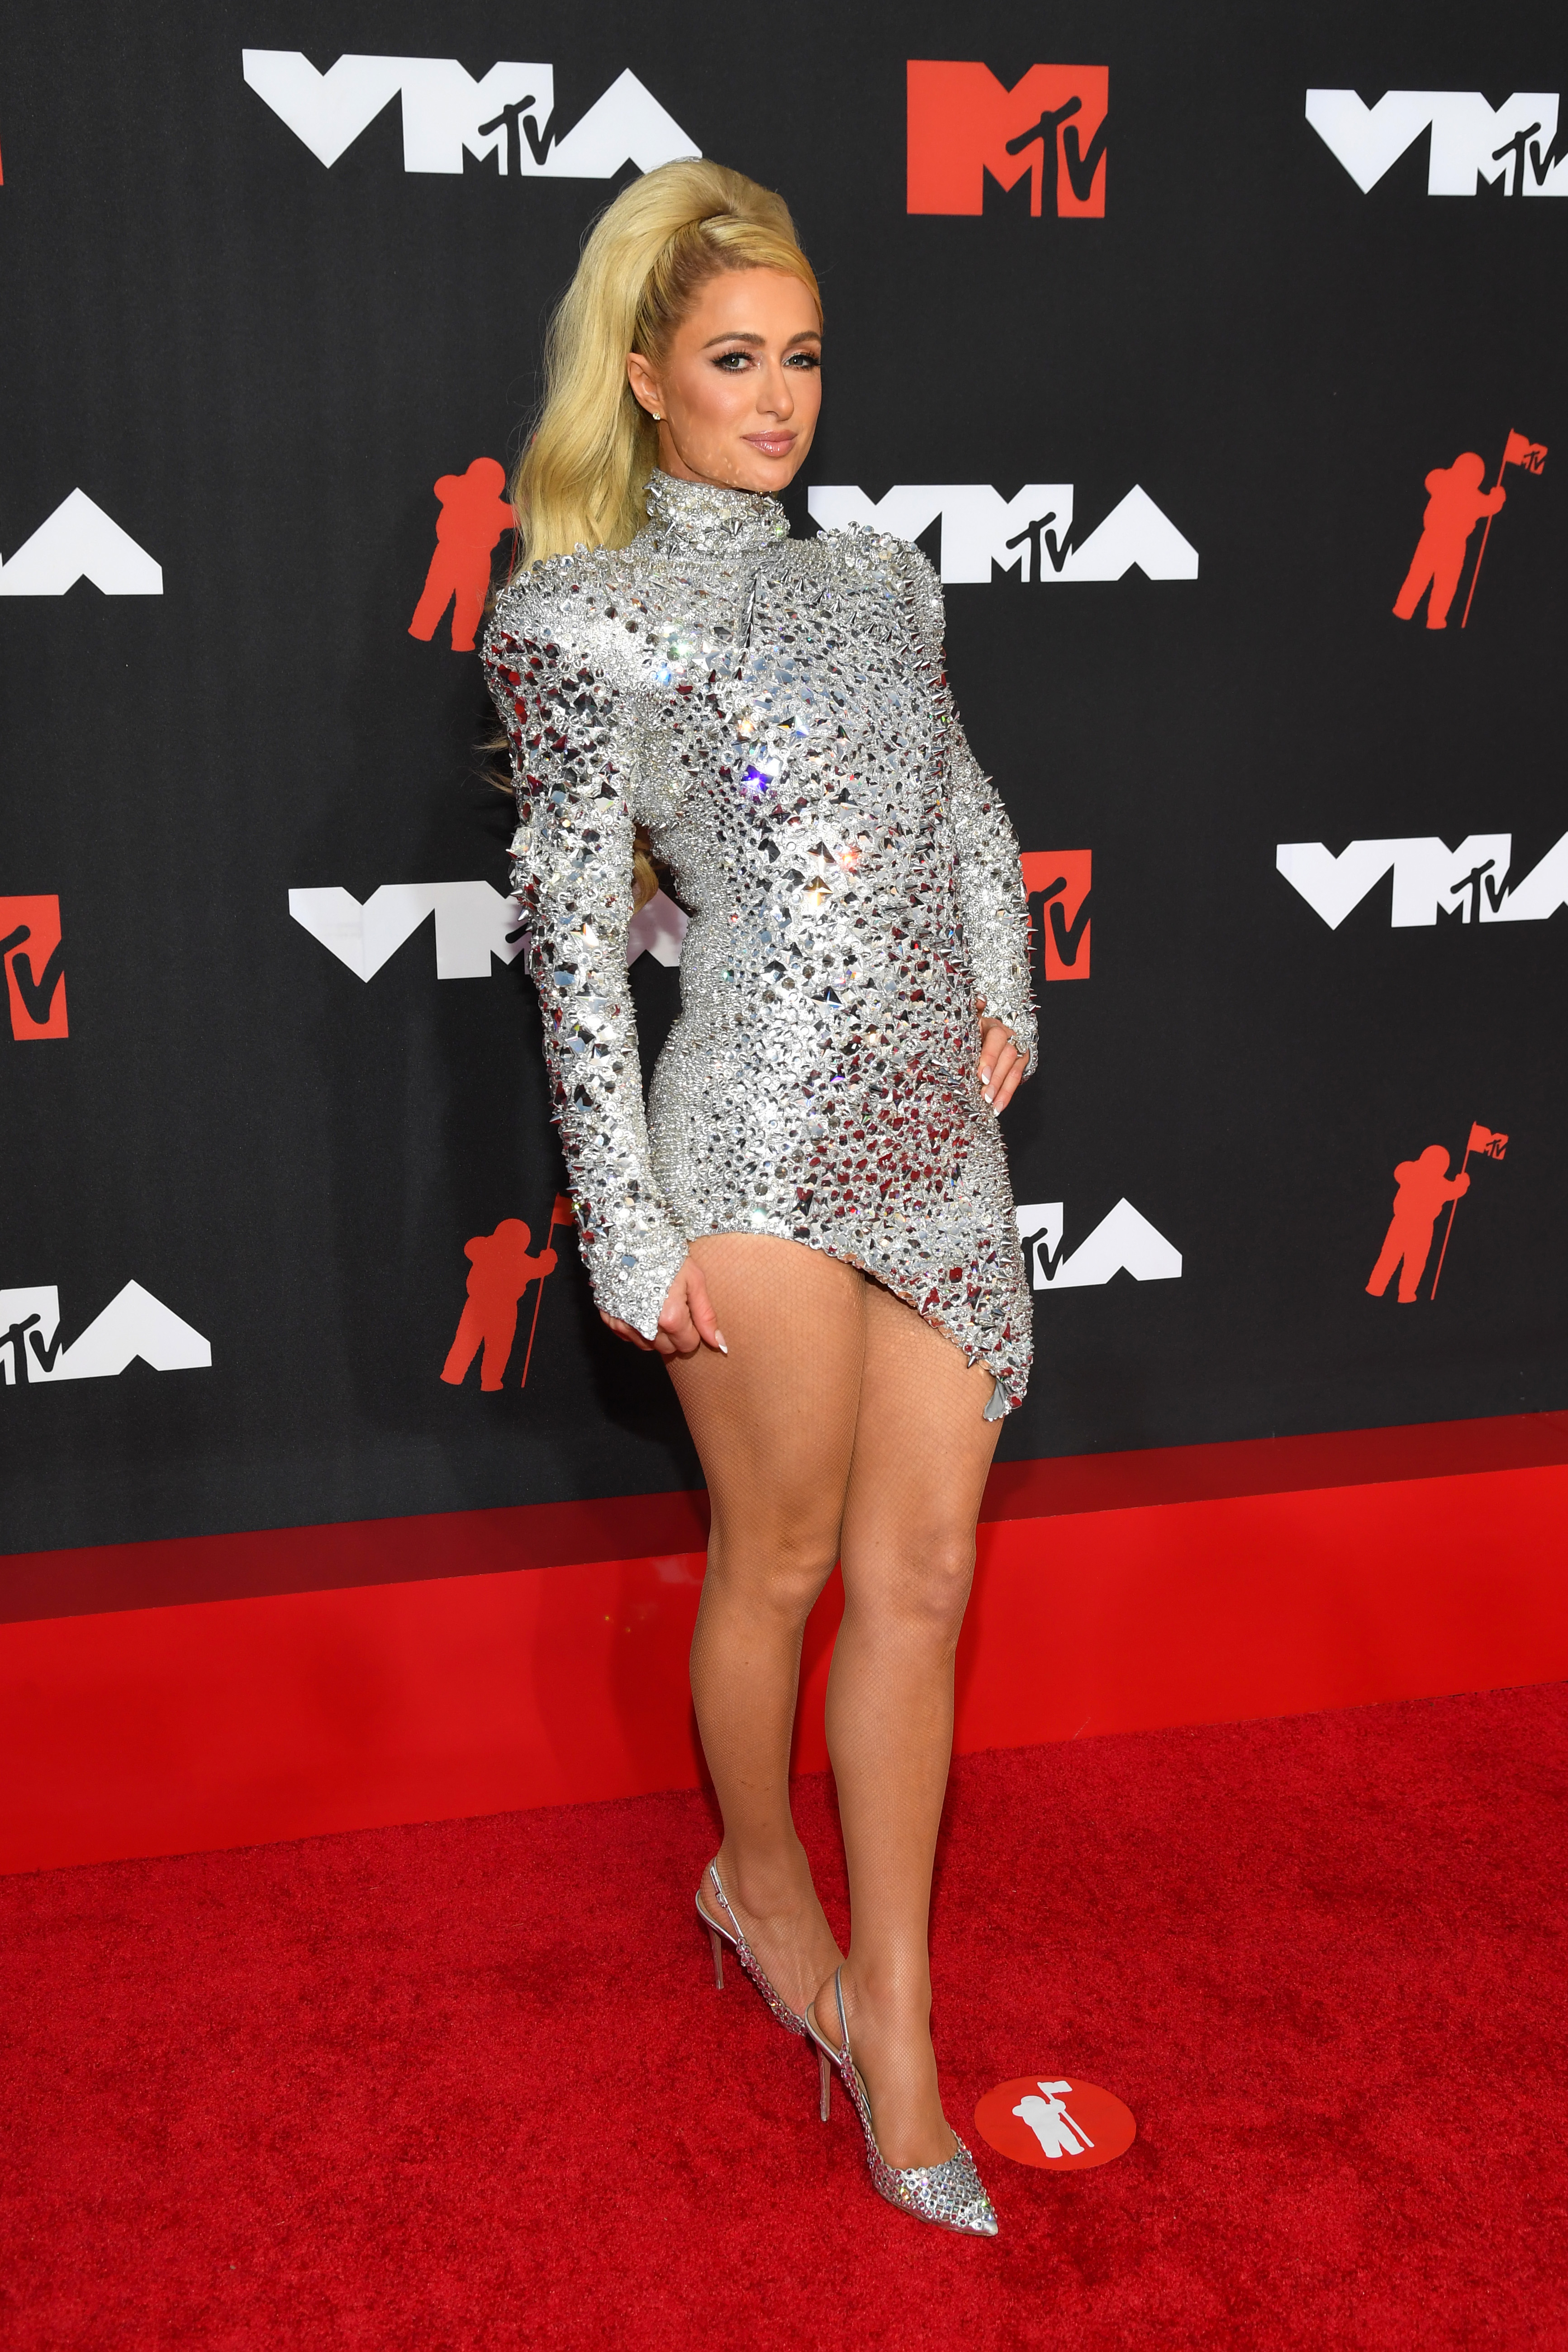 NEW YORK, NEW YORK - SEPTEMBER 12: Paris Hilton attends the 2021 MTV Video Music Awards at Barclays Center on September 12, 2021 in the Brooklyn borough of New York City. (Photo by Kevin Mazur/MTV VMAs 2021/Getty Images for MTV/ ViacomCBS)